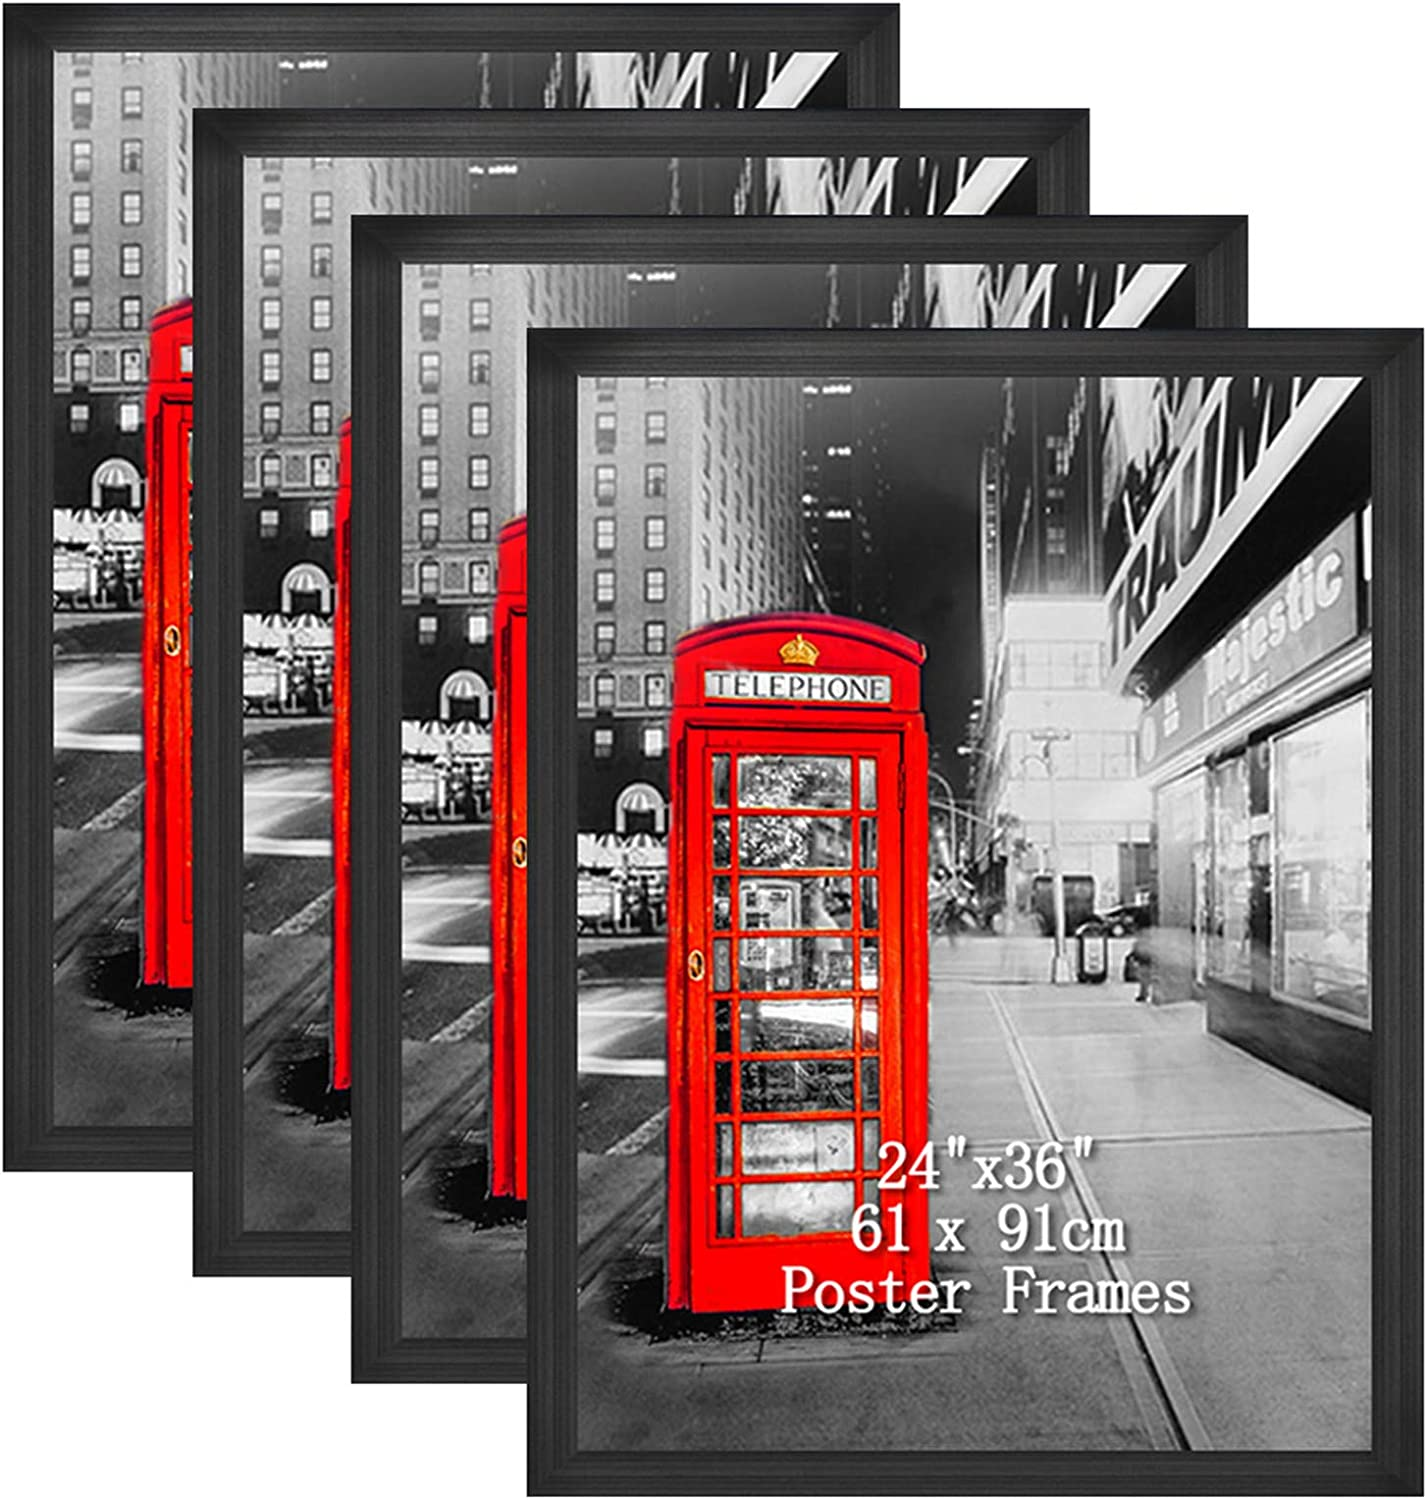 Amazing Roo 24x36 Black Poster Picture Frames Set Made To Display 24 By 36 Inch Photo Picture Frame For Wall Decor 4 Pack Amazon Co Uk Kitchen Home